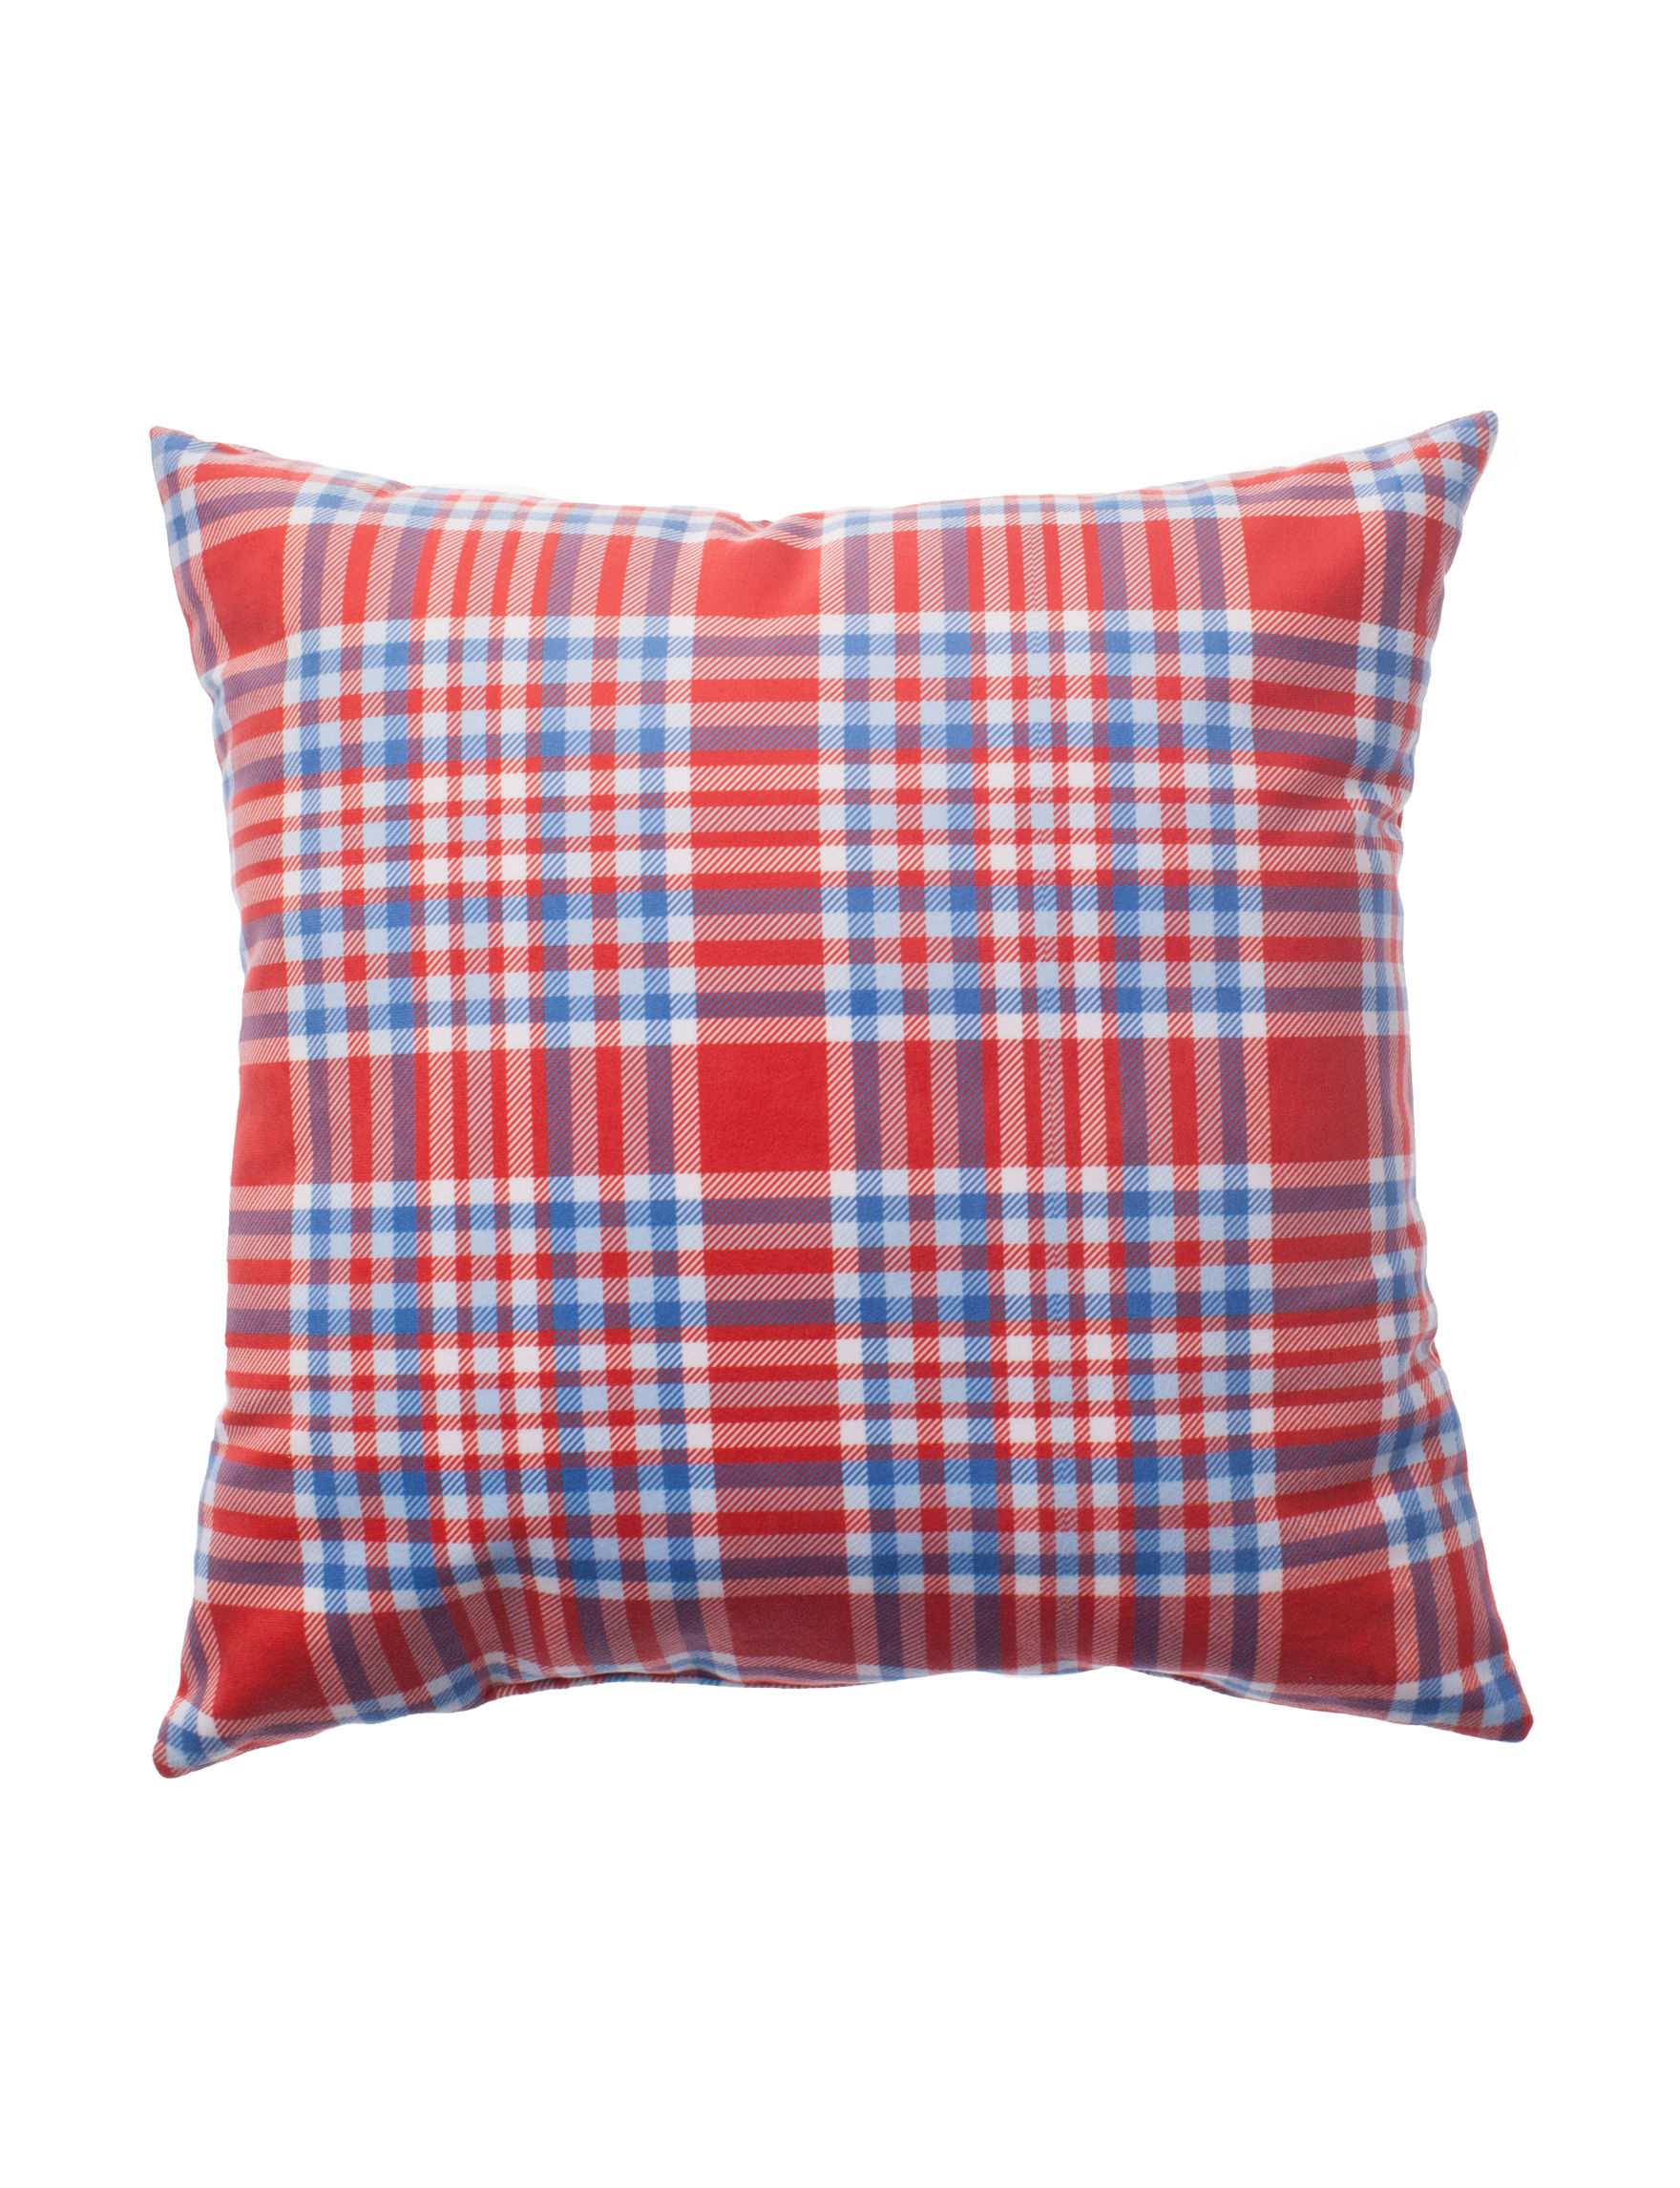 Home Fashions International Blue / White / Red Decorative Pillows